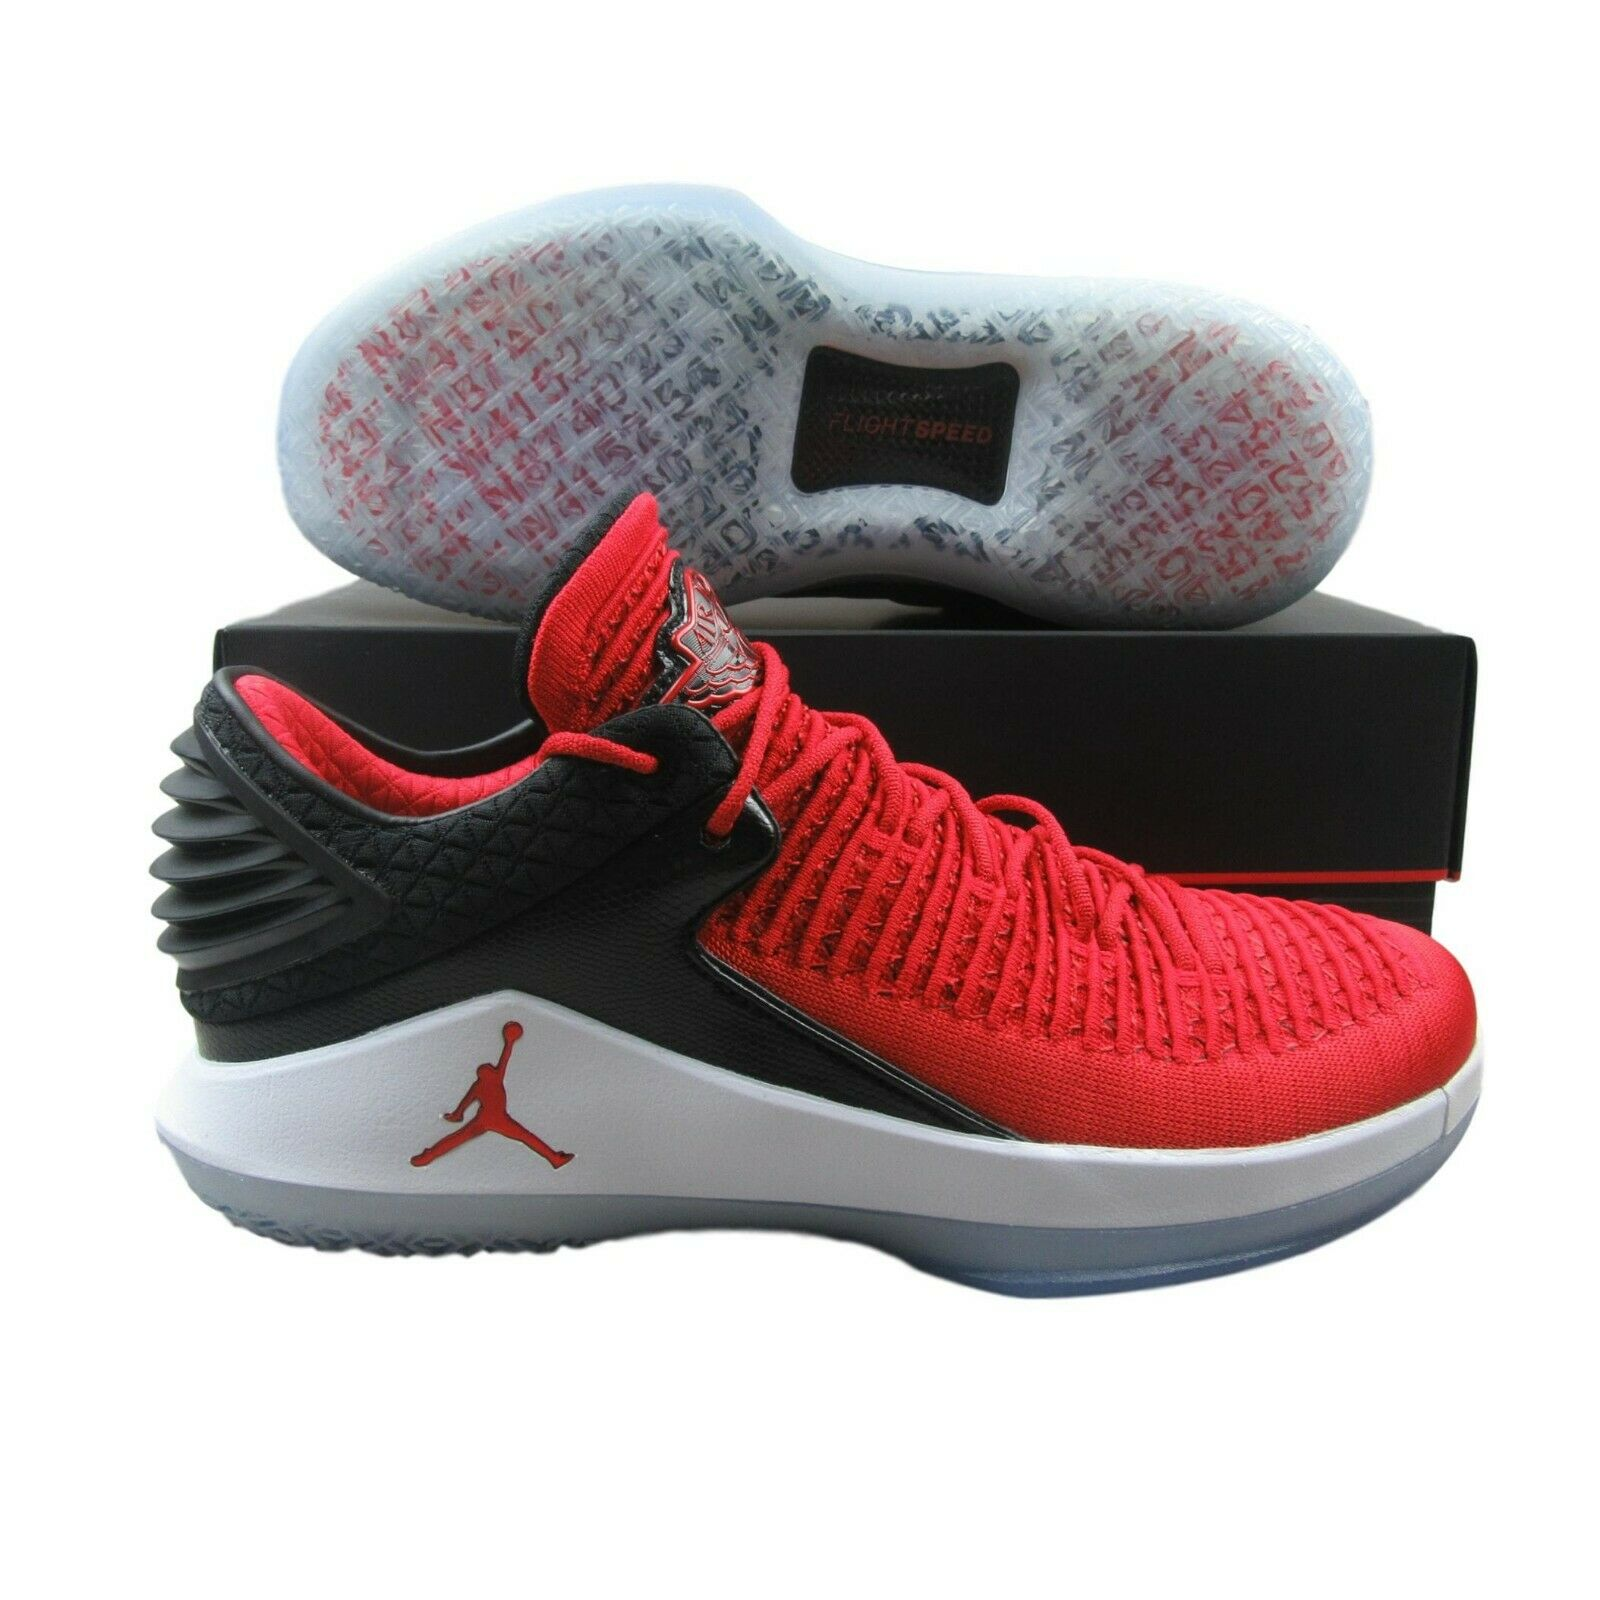 buy popular 30b8e c9281 air-jordan-xxxii-32-low-win-like-96-